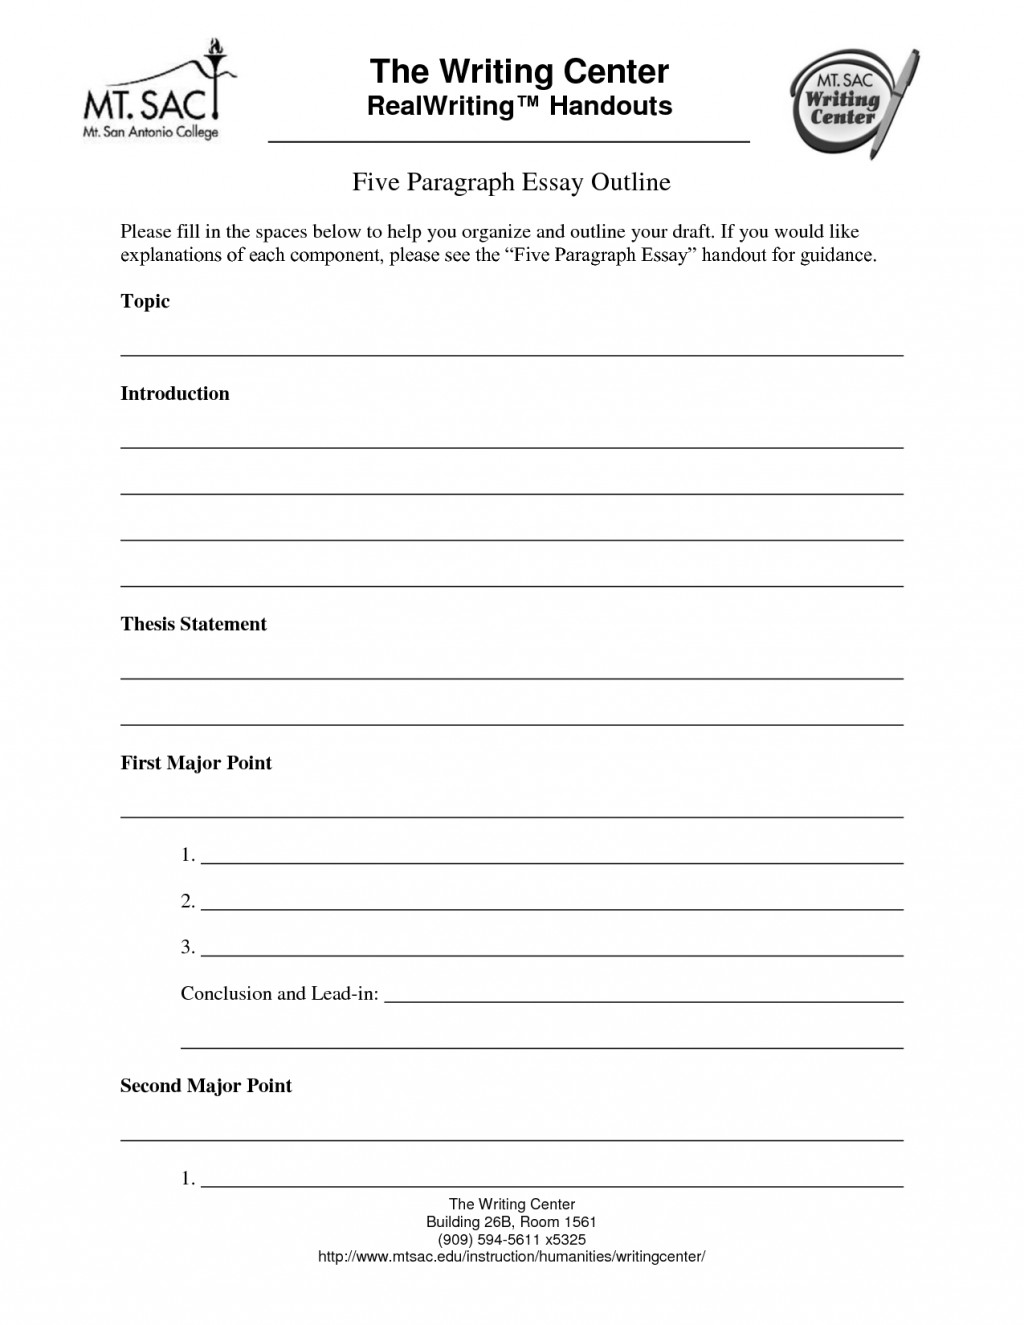 017 Five Paragraph Essay Outline Template 295989 Impressive 5 Printable Persuasive Large